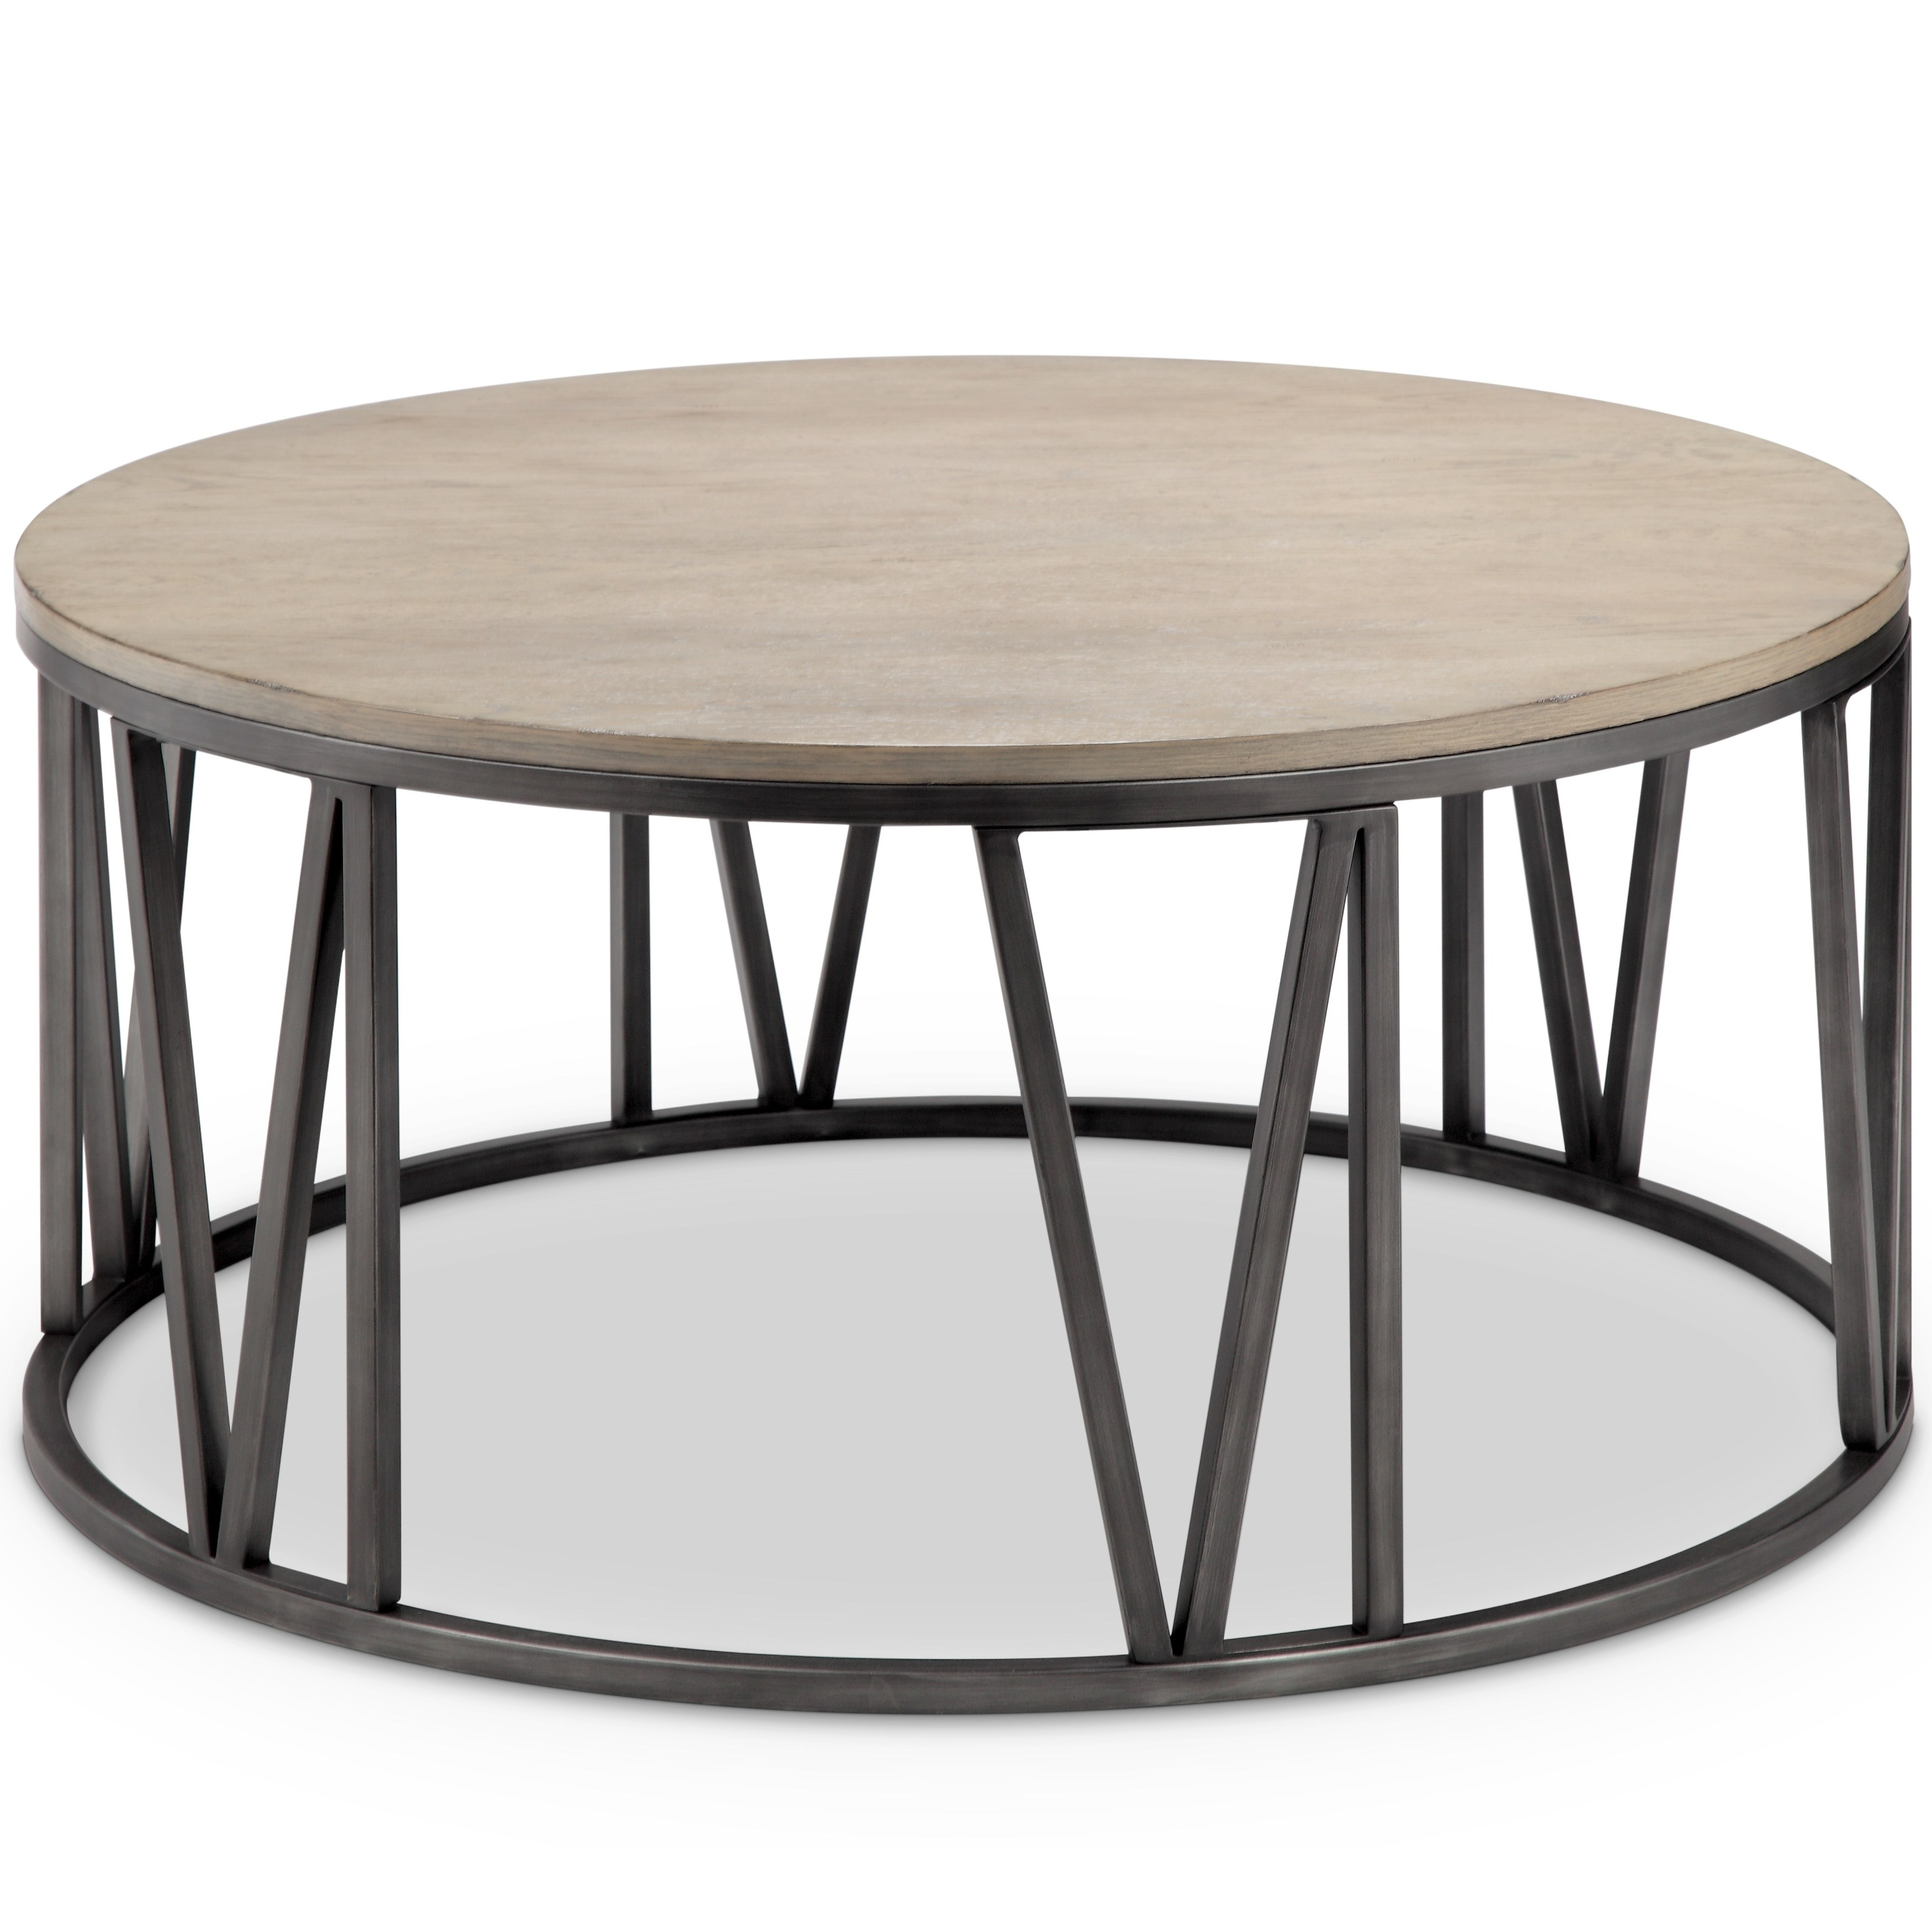 avalon modern weathered white oak round coffee table free accent shipping today speed nesting wood trestle base green painted end tables pottery barn hammock asian porcelain lamps